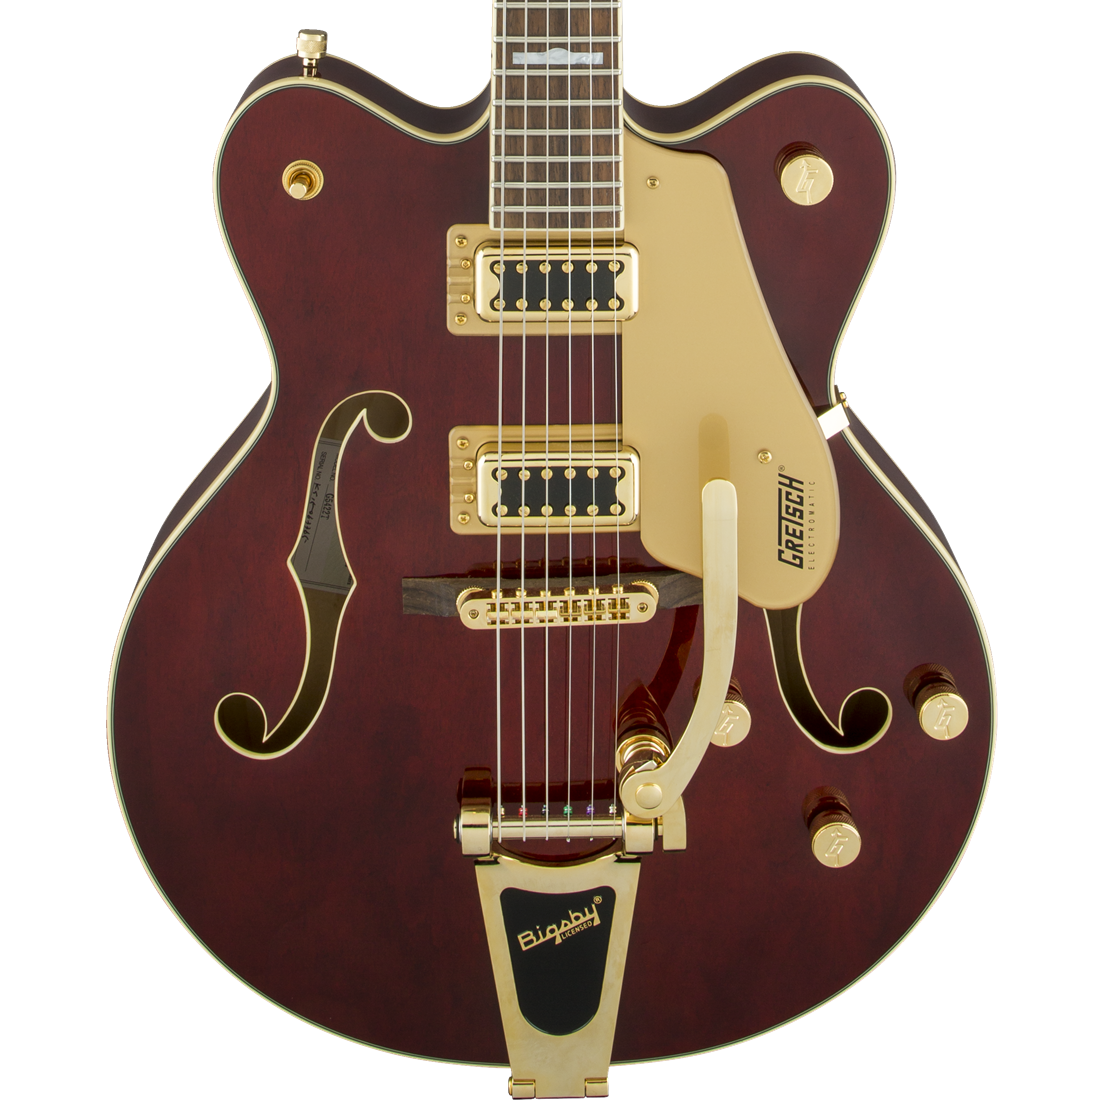 Gretsch G5422TG Electromatic Hollowbody with Bigsby - Walnut Stain